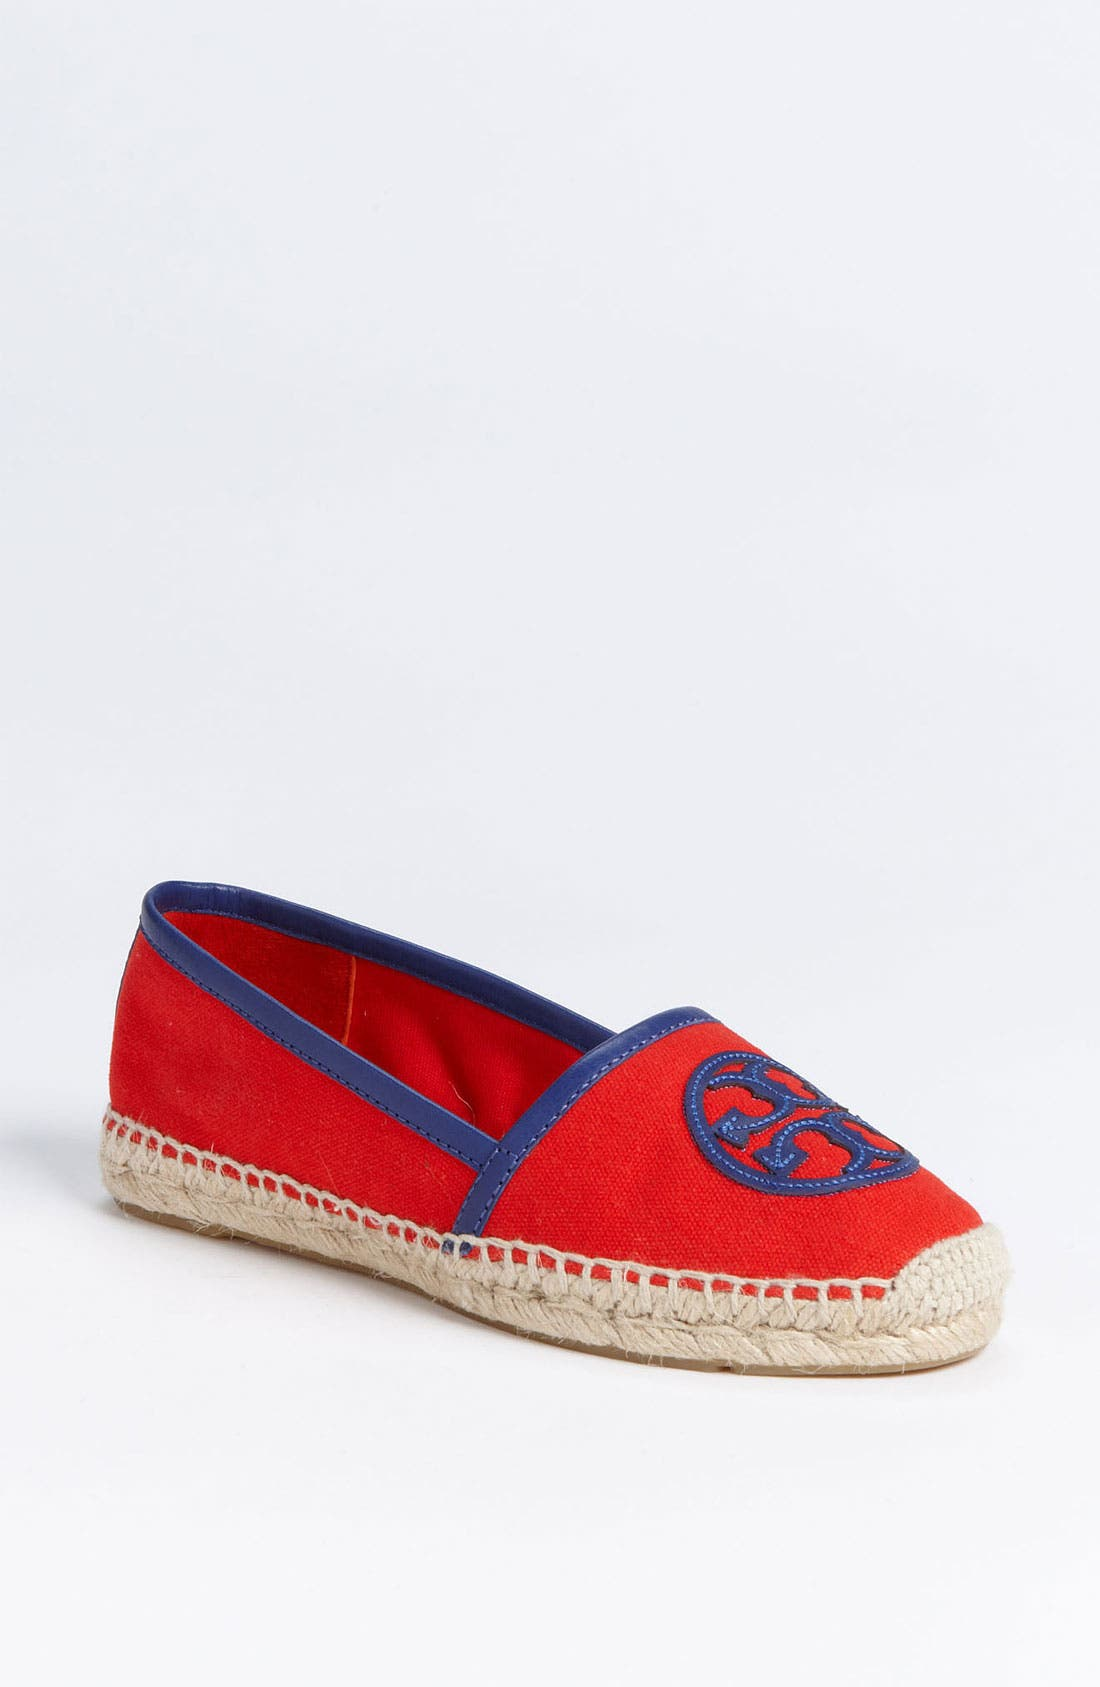 Alternate Image 1 Selected - Tory Burch 'Angus' Espadrille Flat